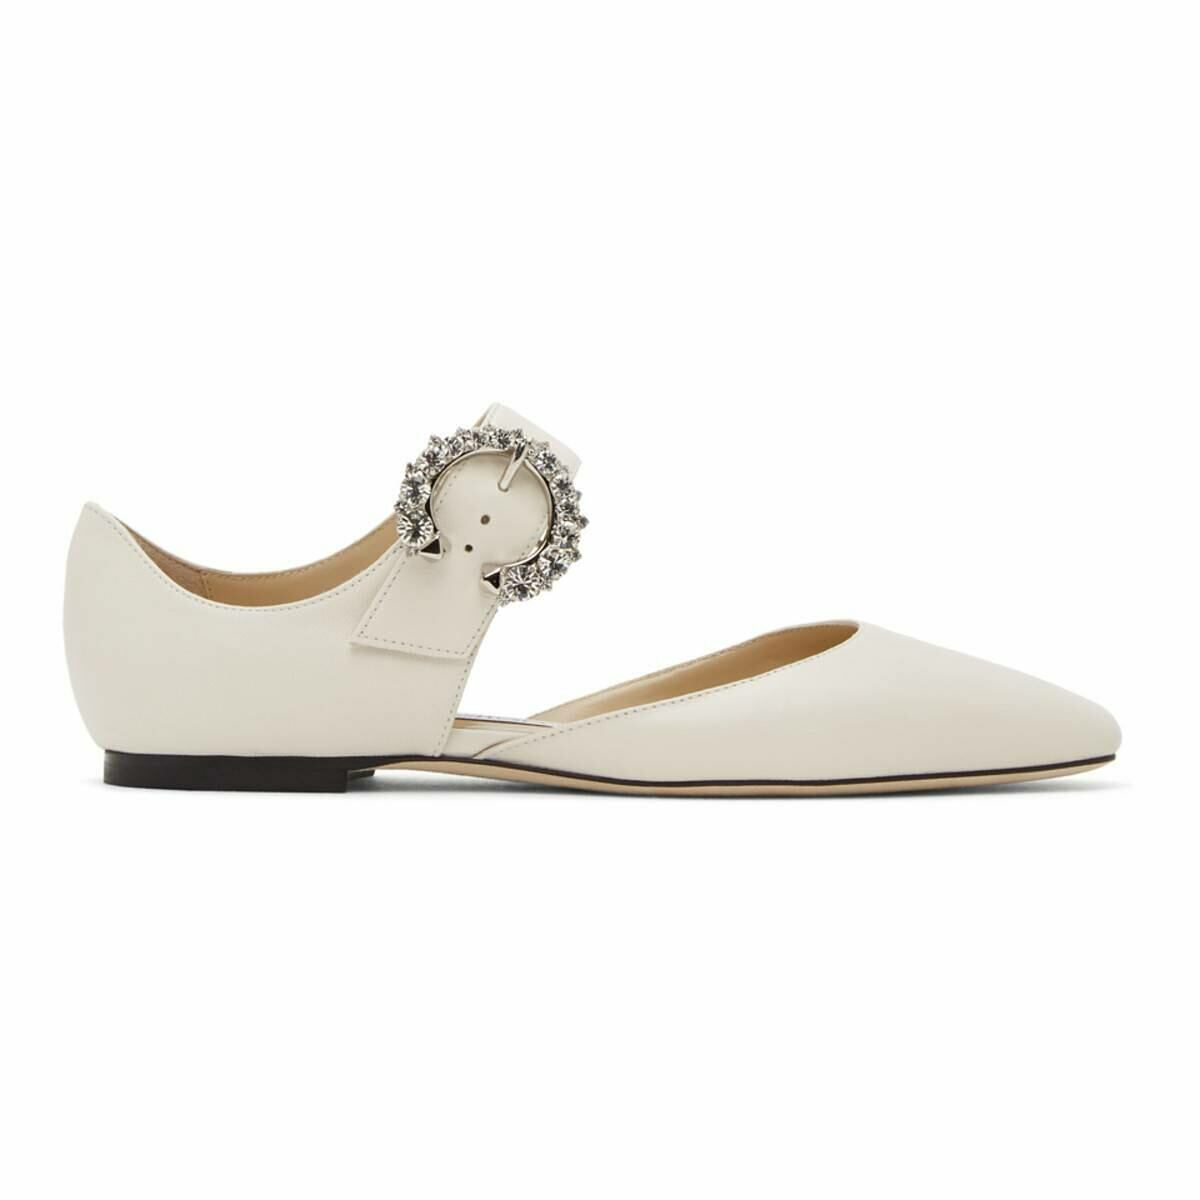 Jimmy Choo White Gin Mary-Jane Flats Ssense USA WOMEN Women SHOES Womens BALLERINAS